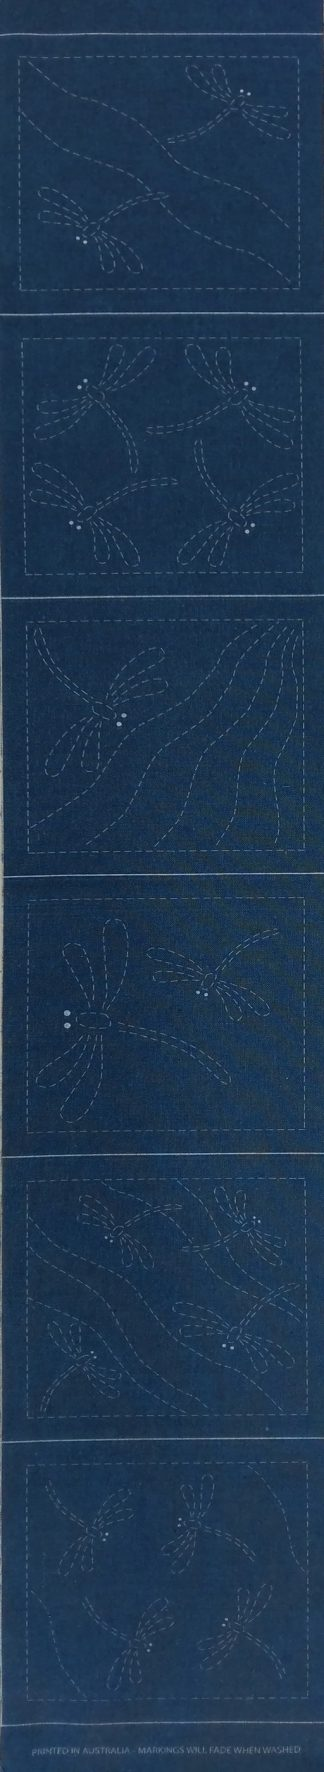 Sashiko Panel Dragonfly Coaster Runner Set No.DFCR-Blue